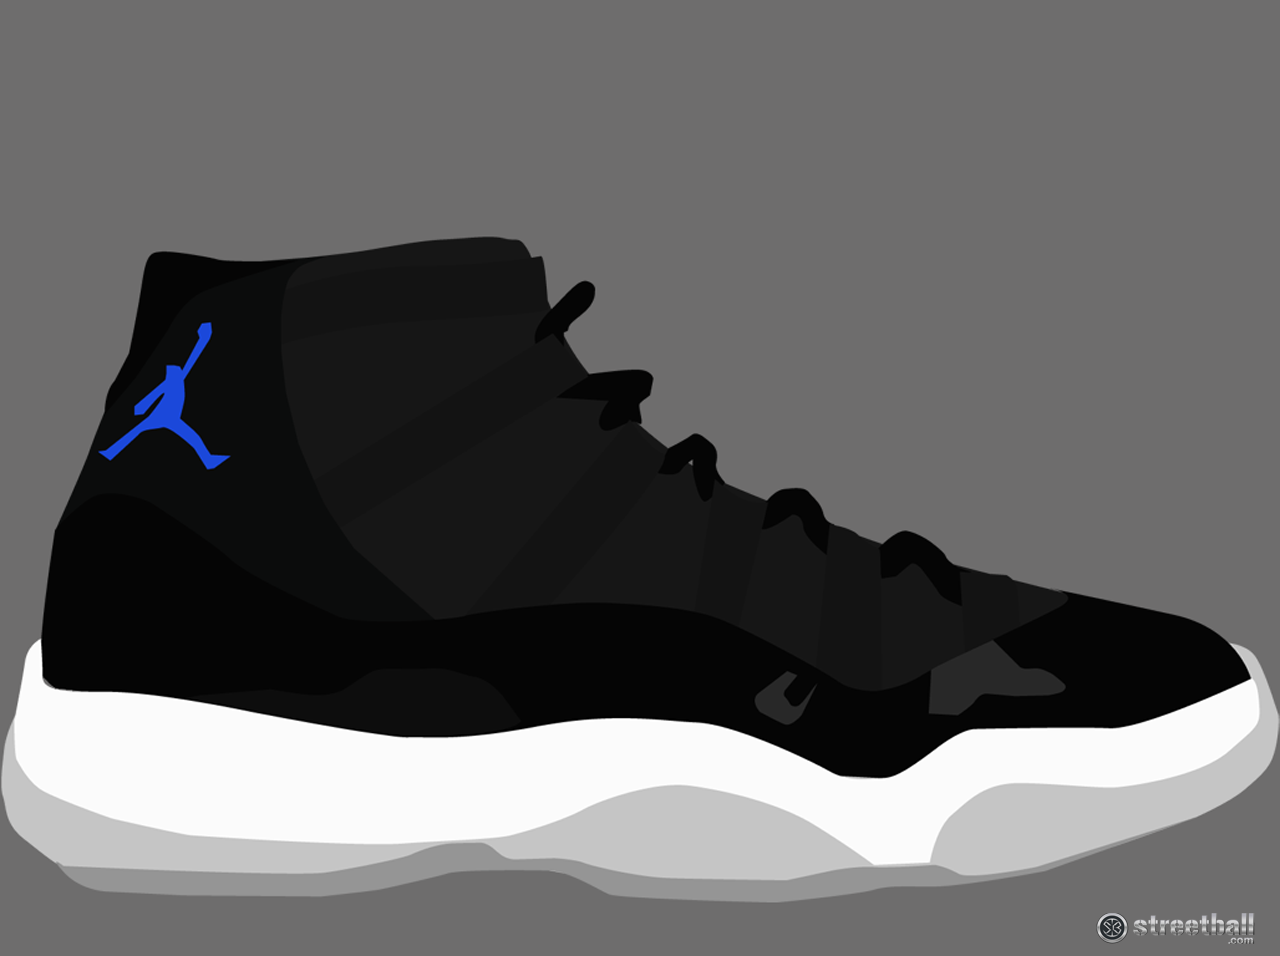 Jordan Shoes Wallpapers in HQ Resolution, 48, HBC.333 Backgrounds.